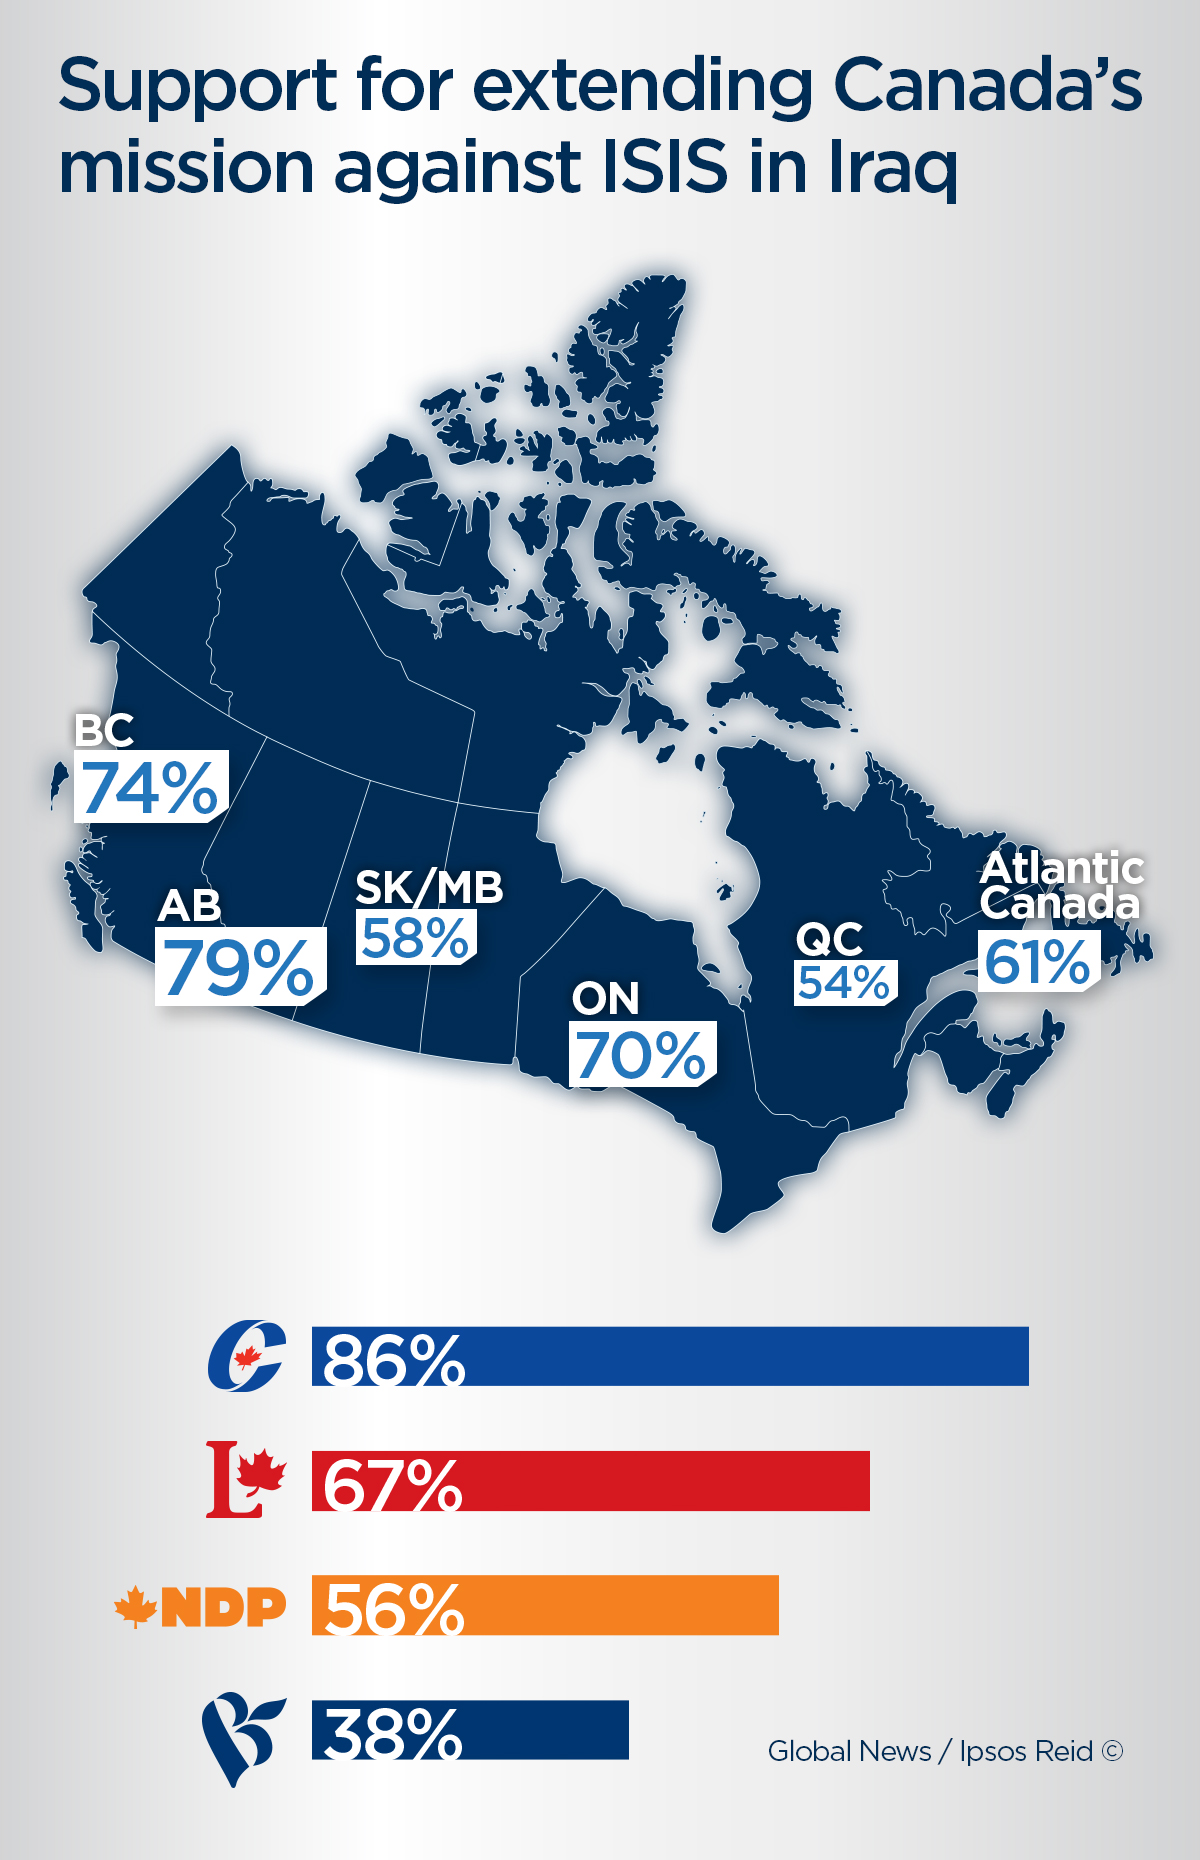 Results of an exclusive Global News/Ipsos Reid poll.